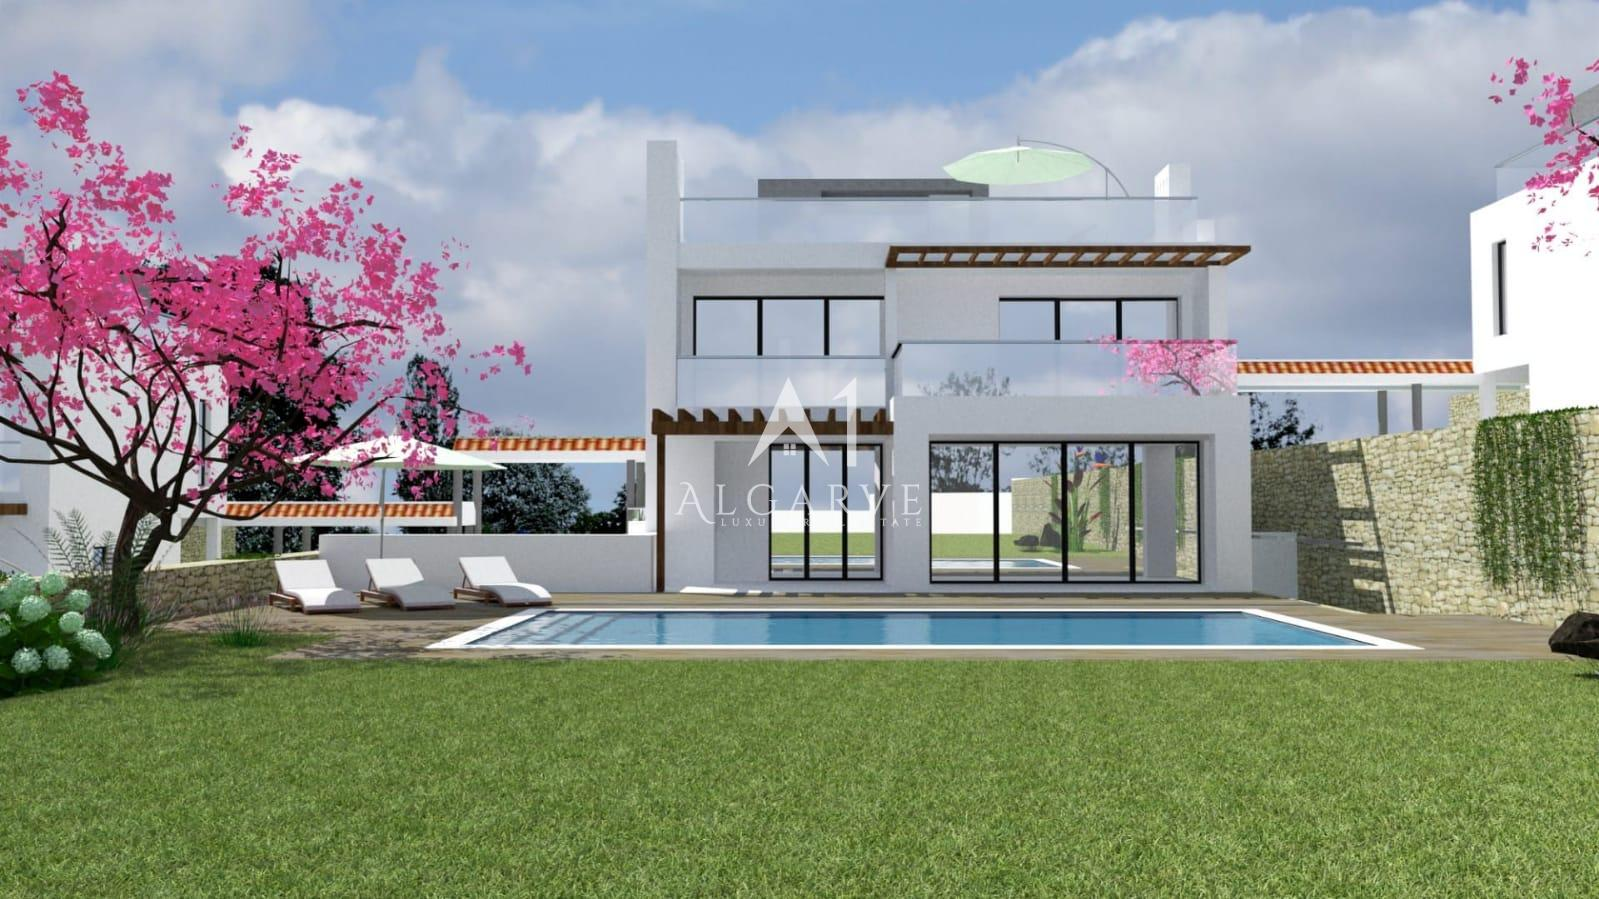 LUXURY VILLAS UNDER CONSTRUCTION